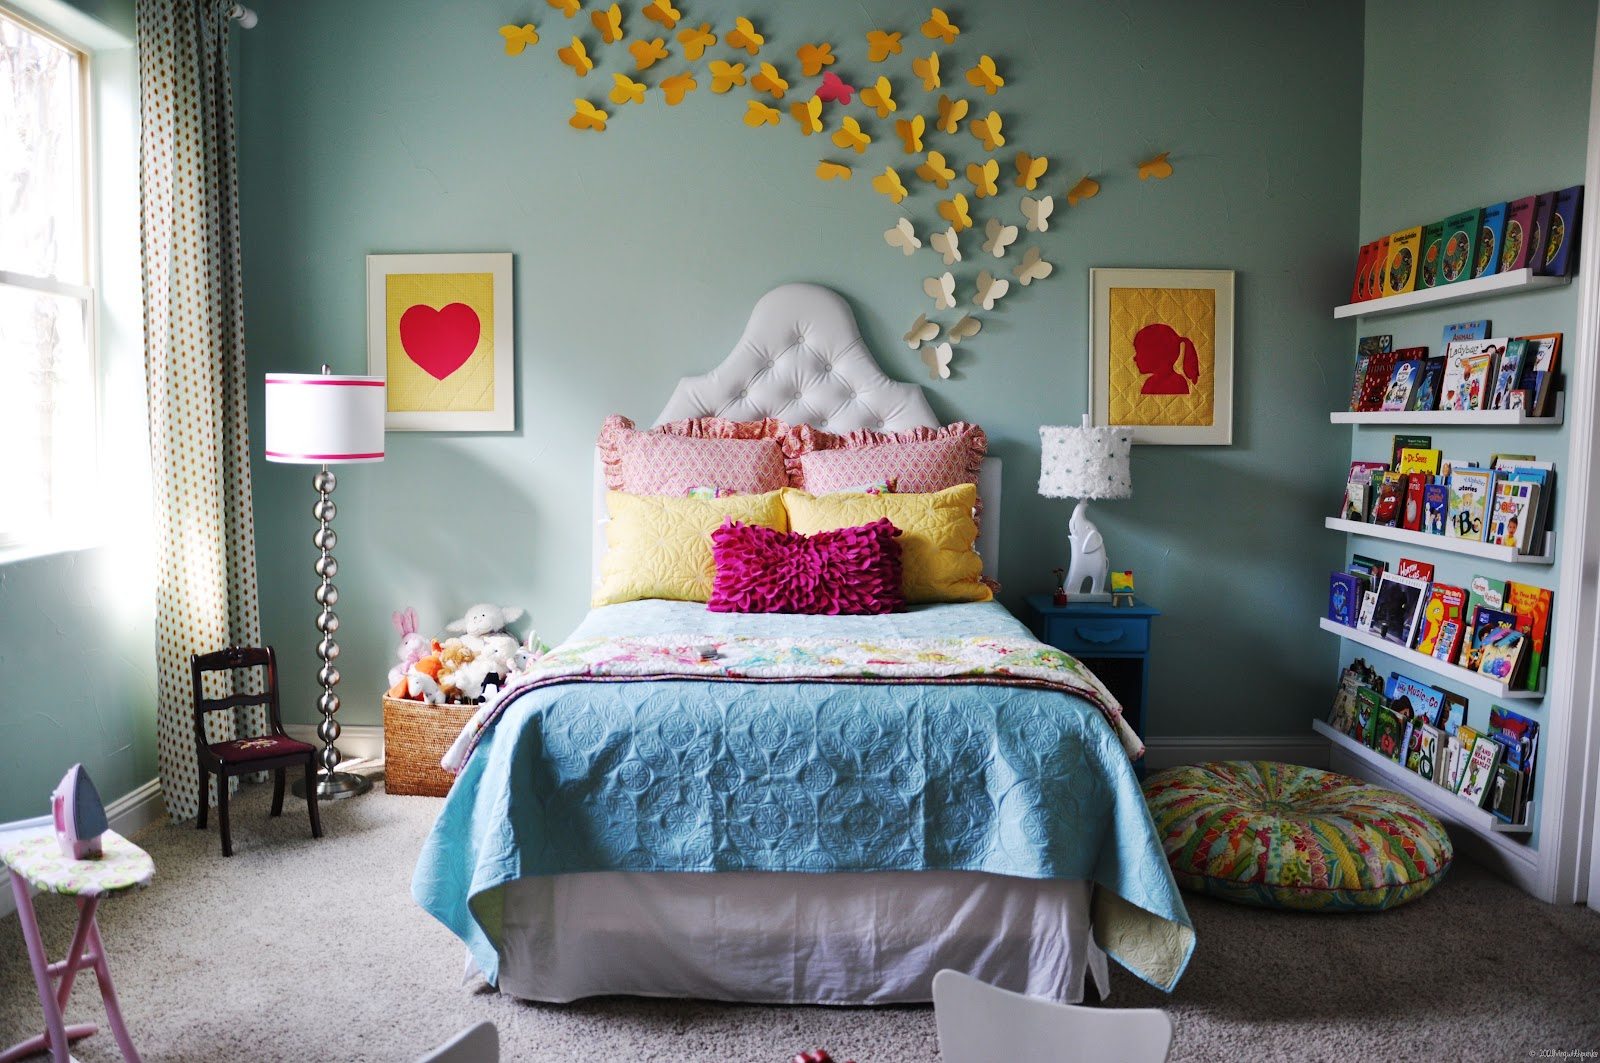 Big girl bedroom ideas for Bedroom ideas for a girl